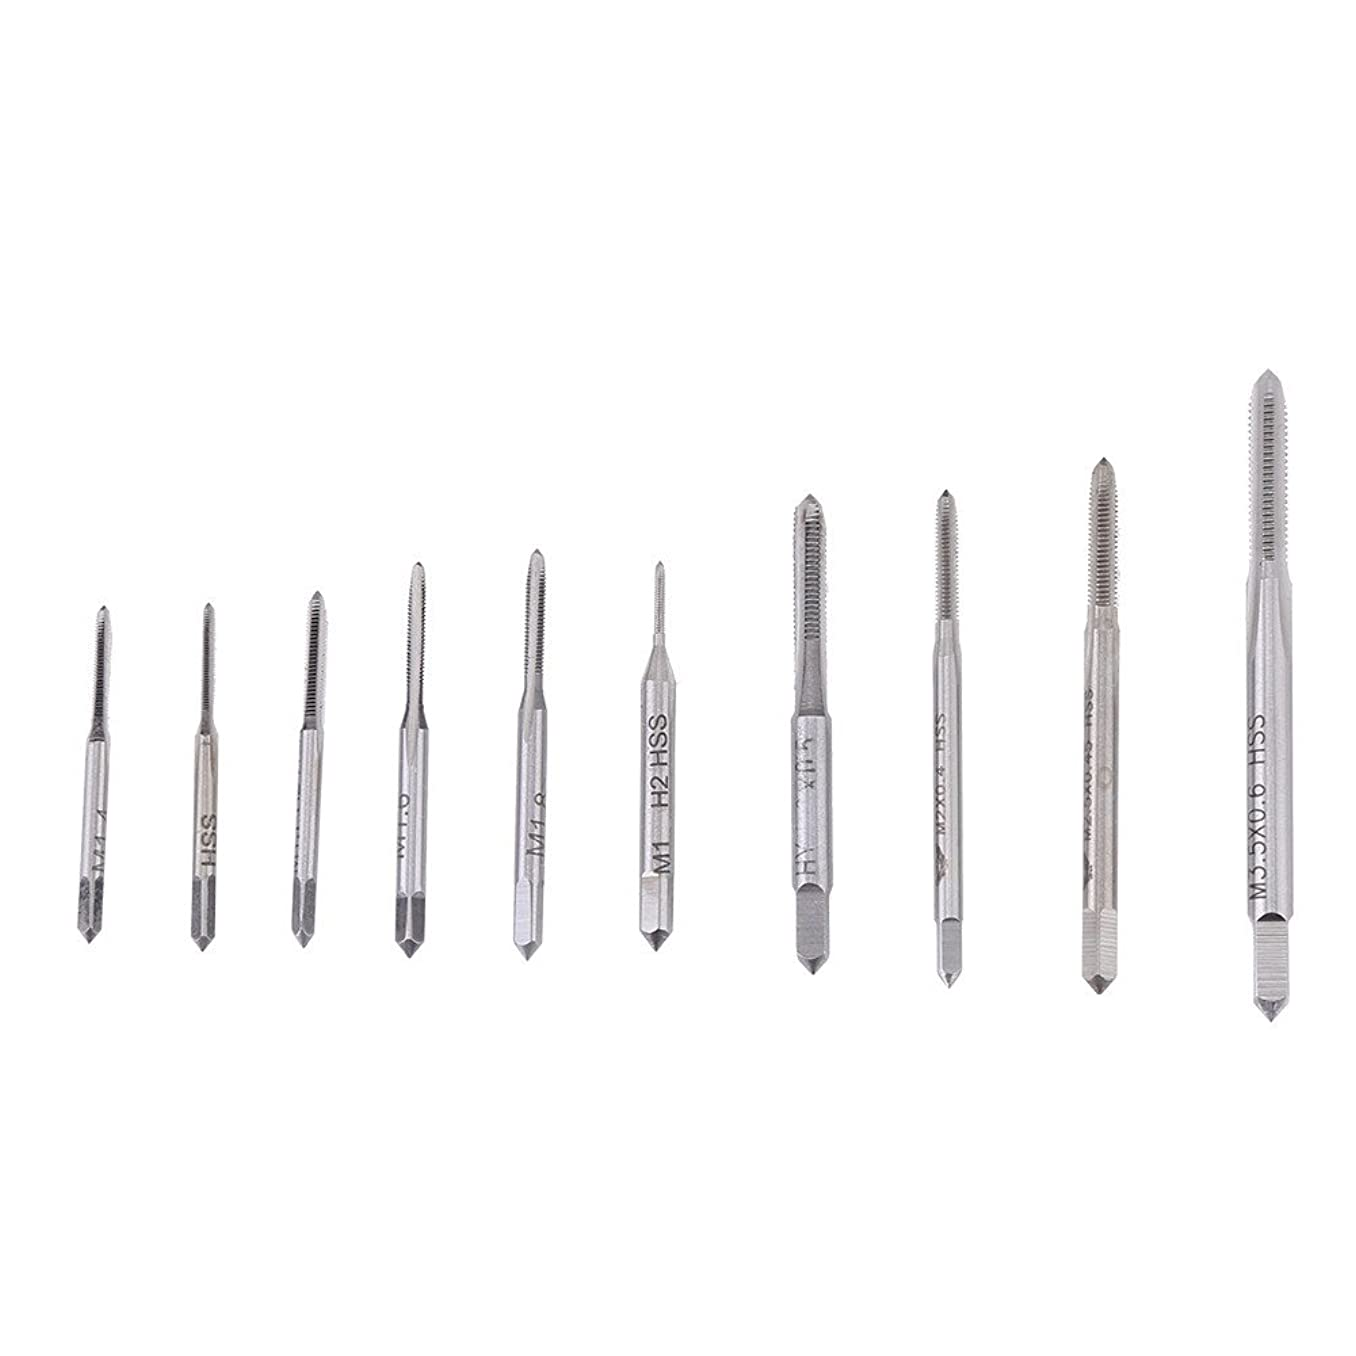 Acogedor 10pcs Machine Hand Threading Taps M1—M3.5,HSS Metric Machine Plug Thread Screw Tap Tool Set,M1, M1.2, M1.4, M1.6, M1.7, M1.8, M2, M2.5, M3, M3.5